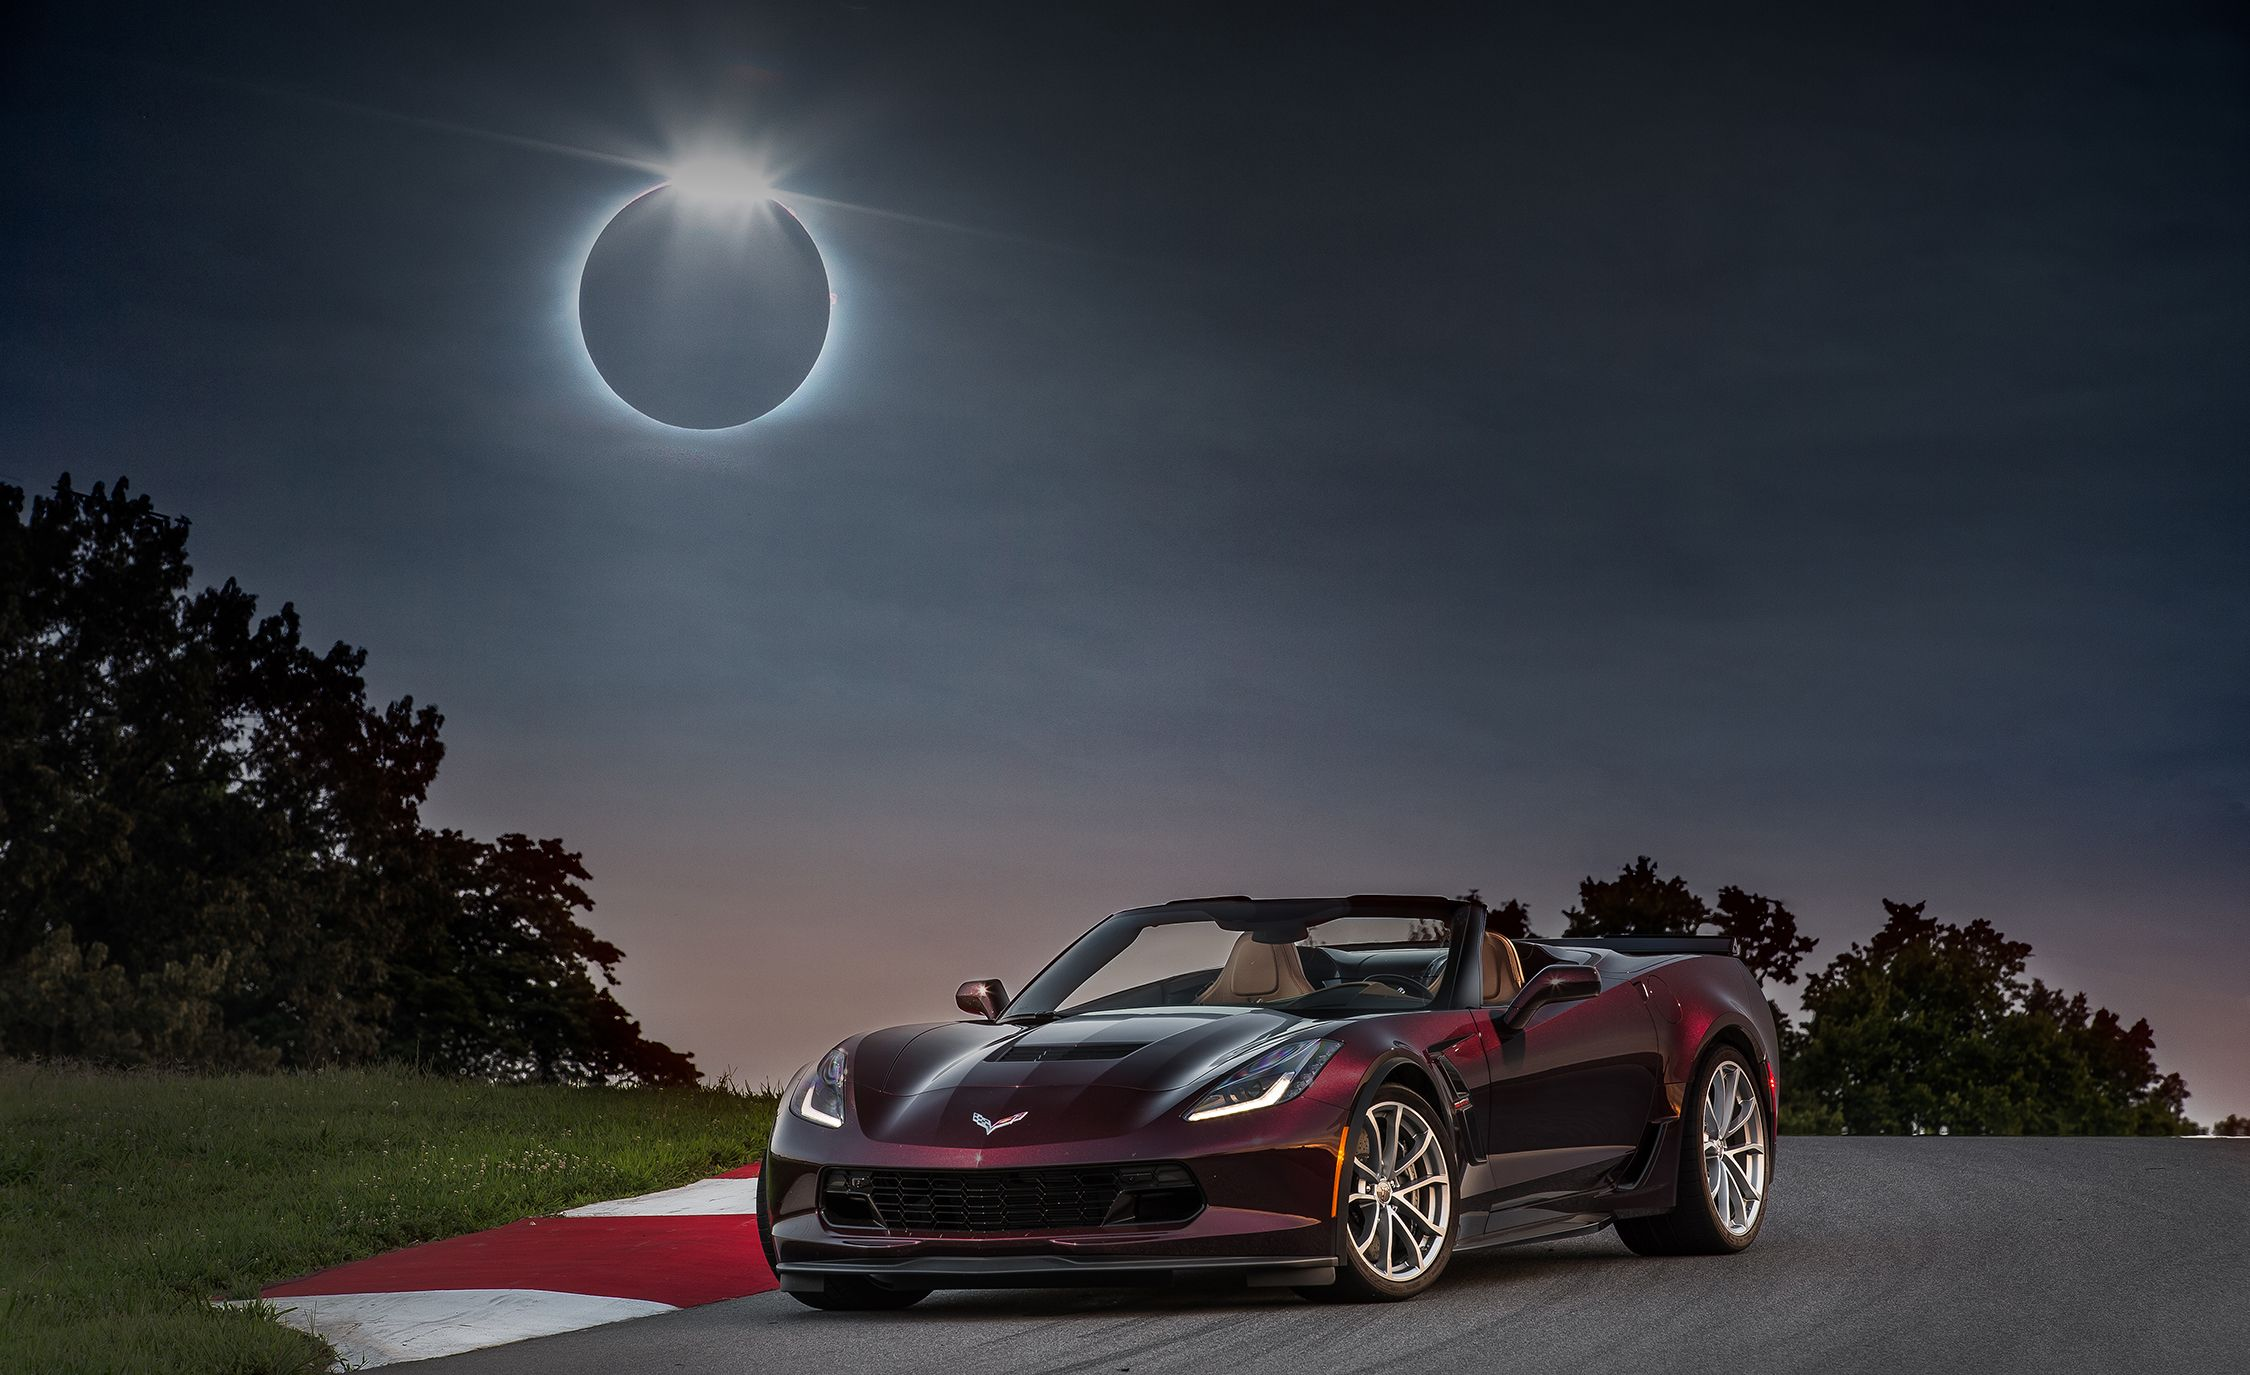 Driving into Darkness: Experiencing the Great American Eclipse in the Great American Sports Car